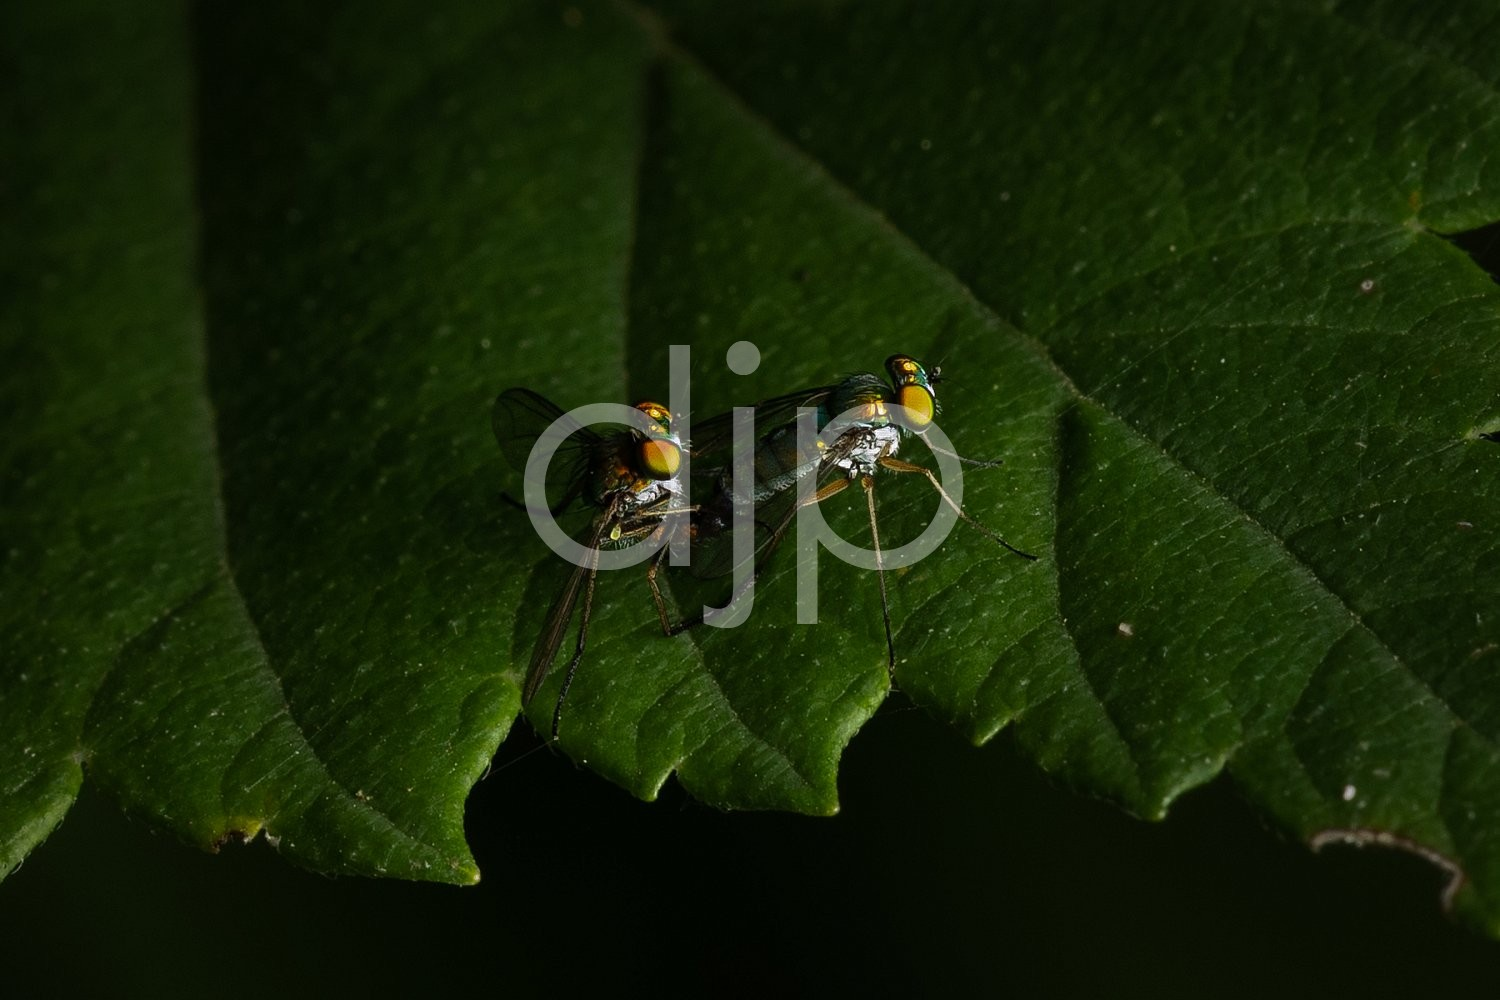 Sugar Land, djonesphoto, excursions with djp, fly, green, macro, personal, quarantine, yellow, D Jones Photography